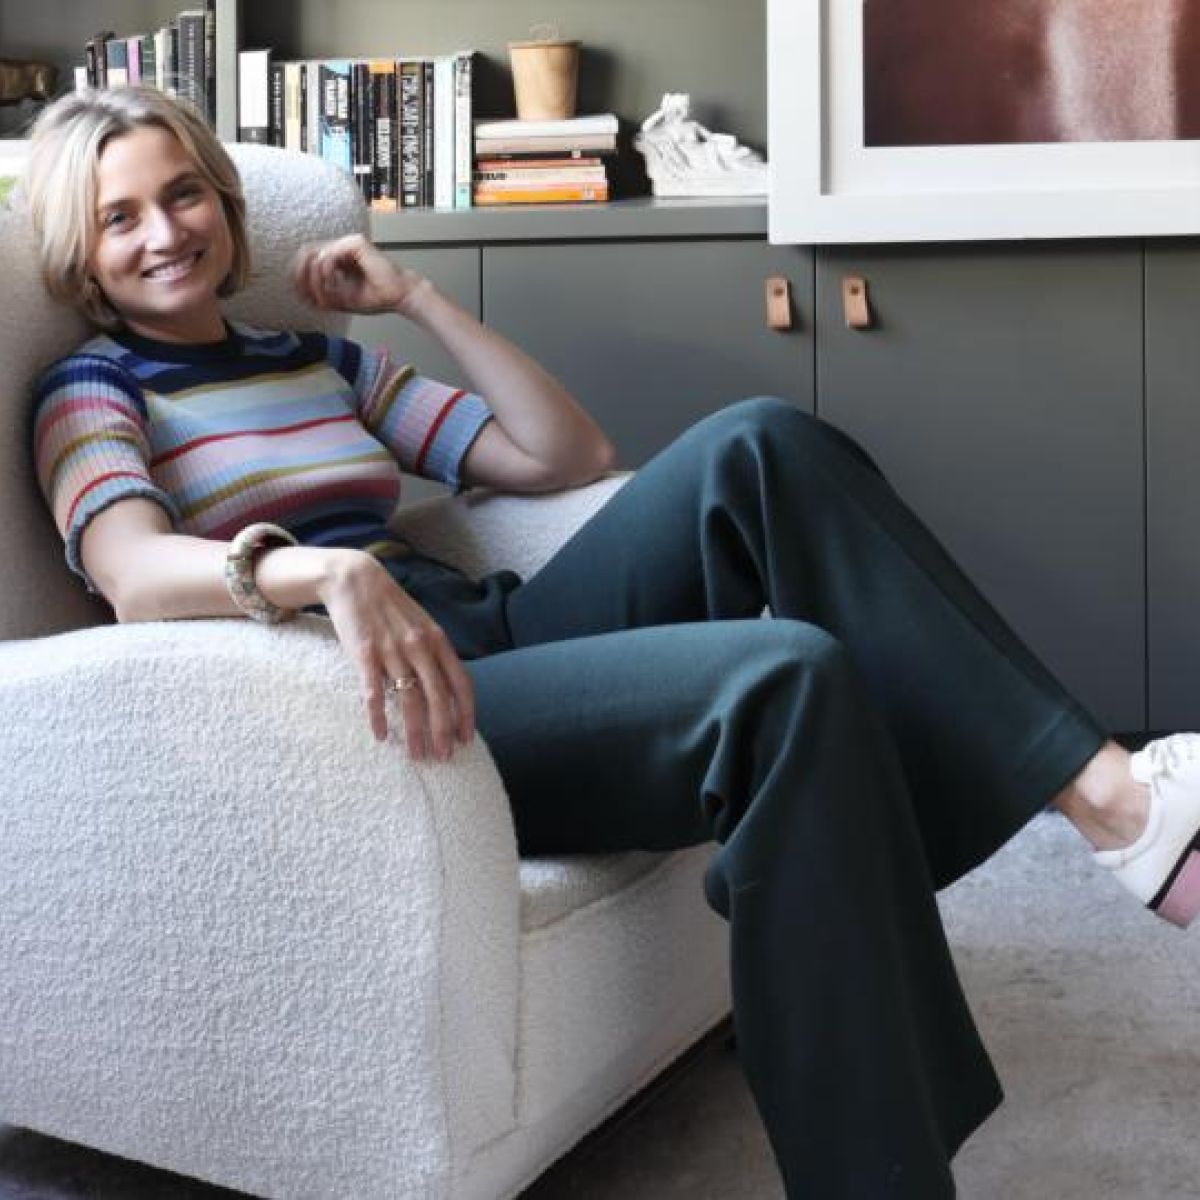 irishtimes.com - Ruth O'Connor - Planning to revamp your home? Be inspired by the 'world's best' interior designers